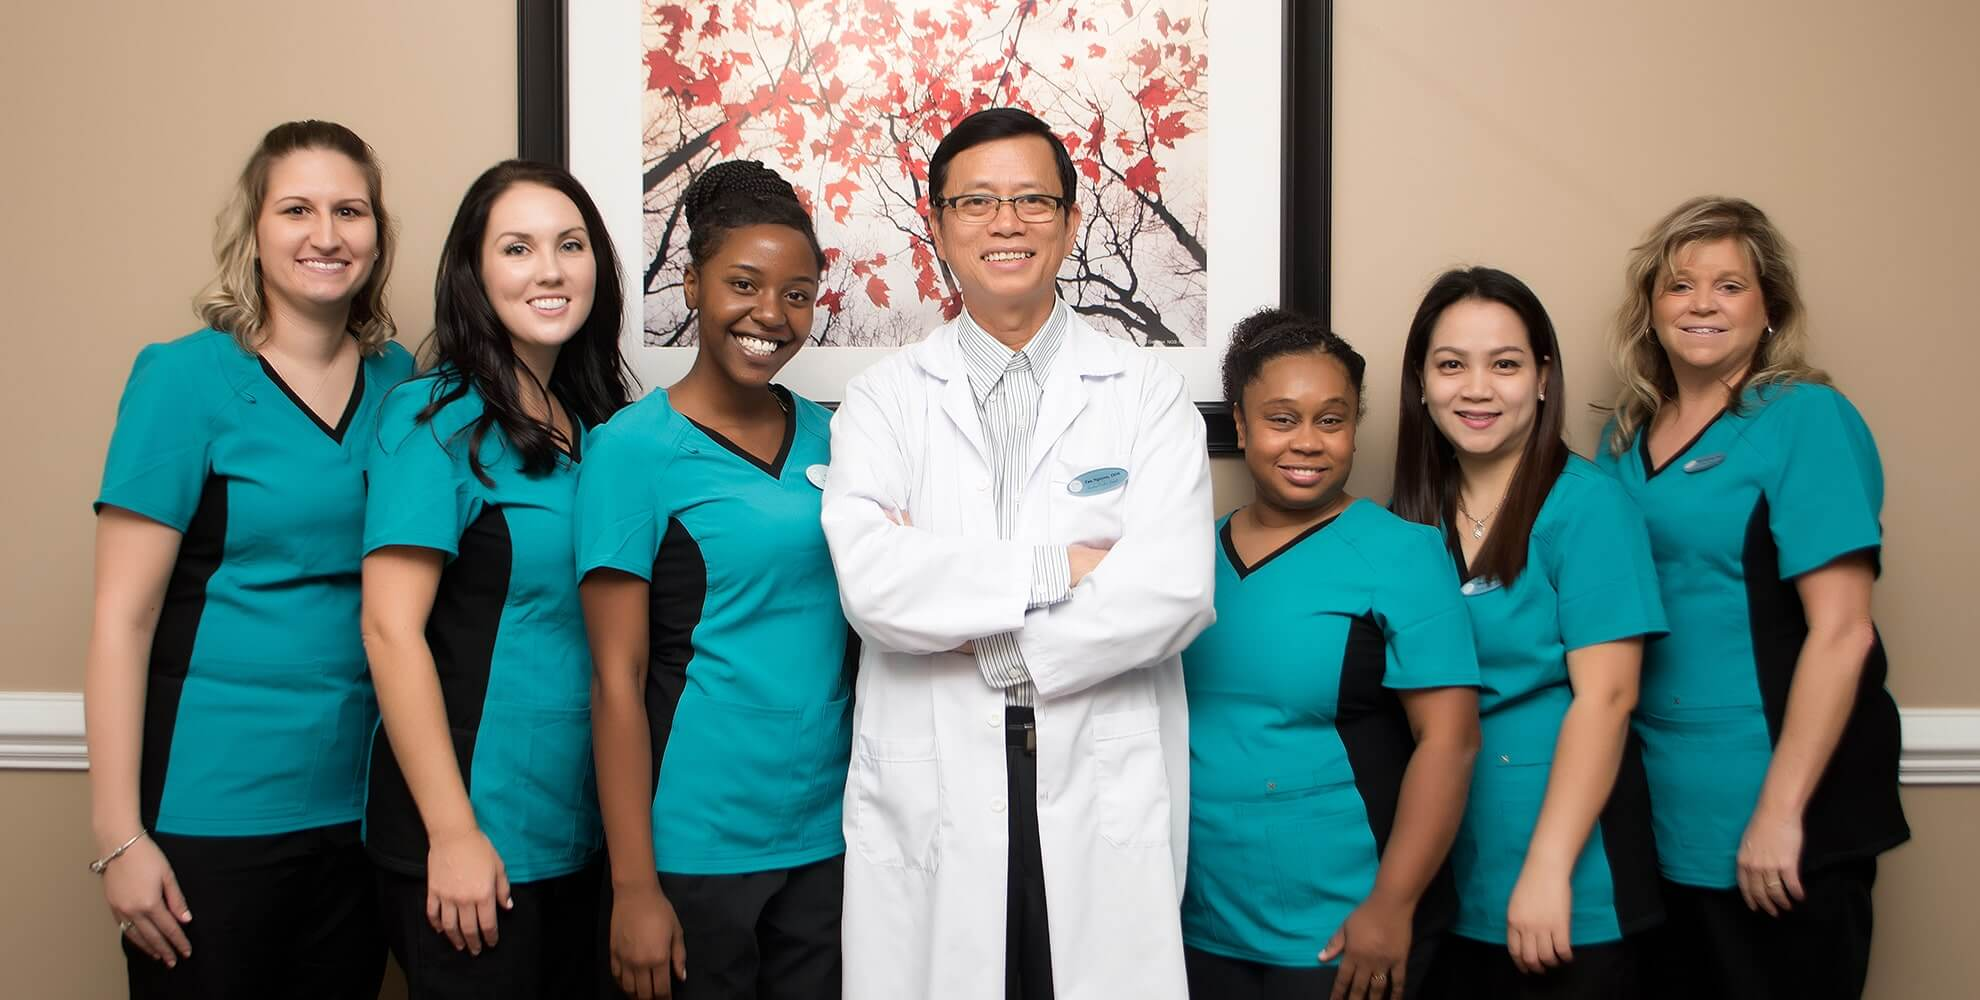 Dr. Dr. Tan Binh Nguyen and his dental team n Fayetteville, NC